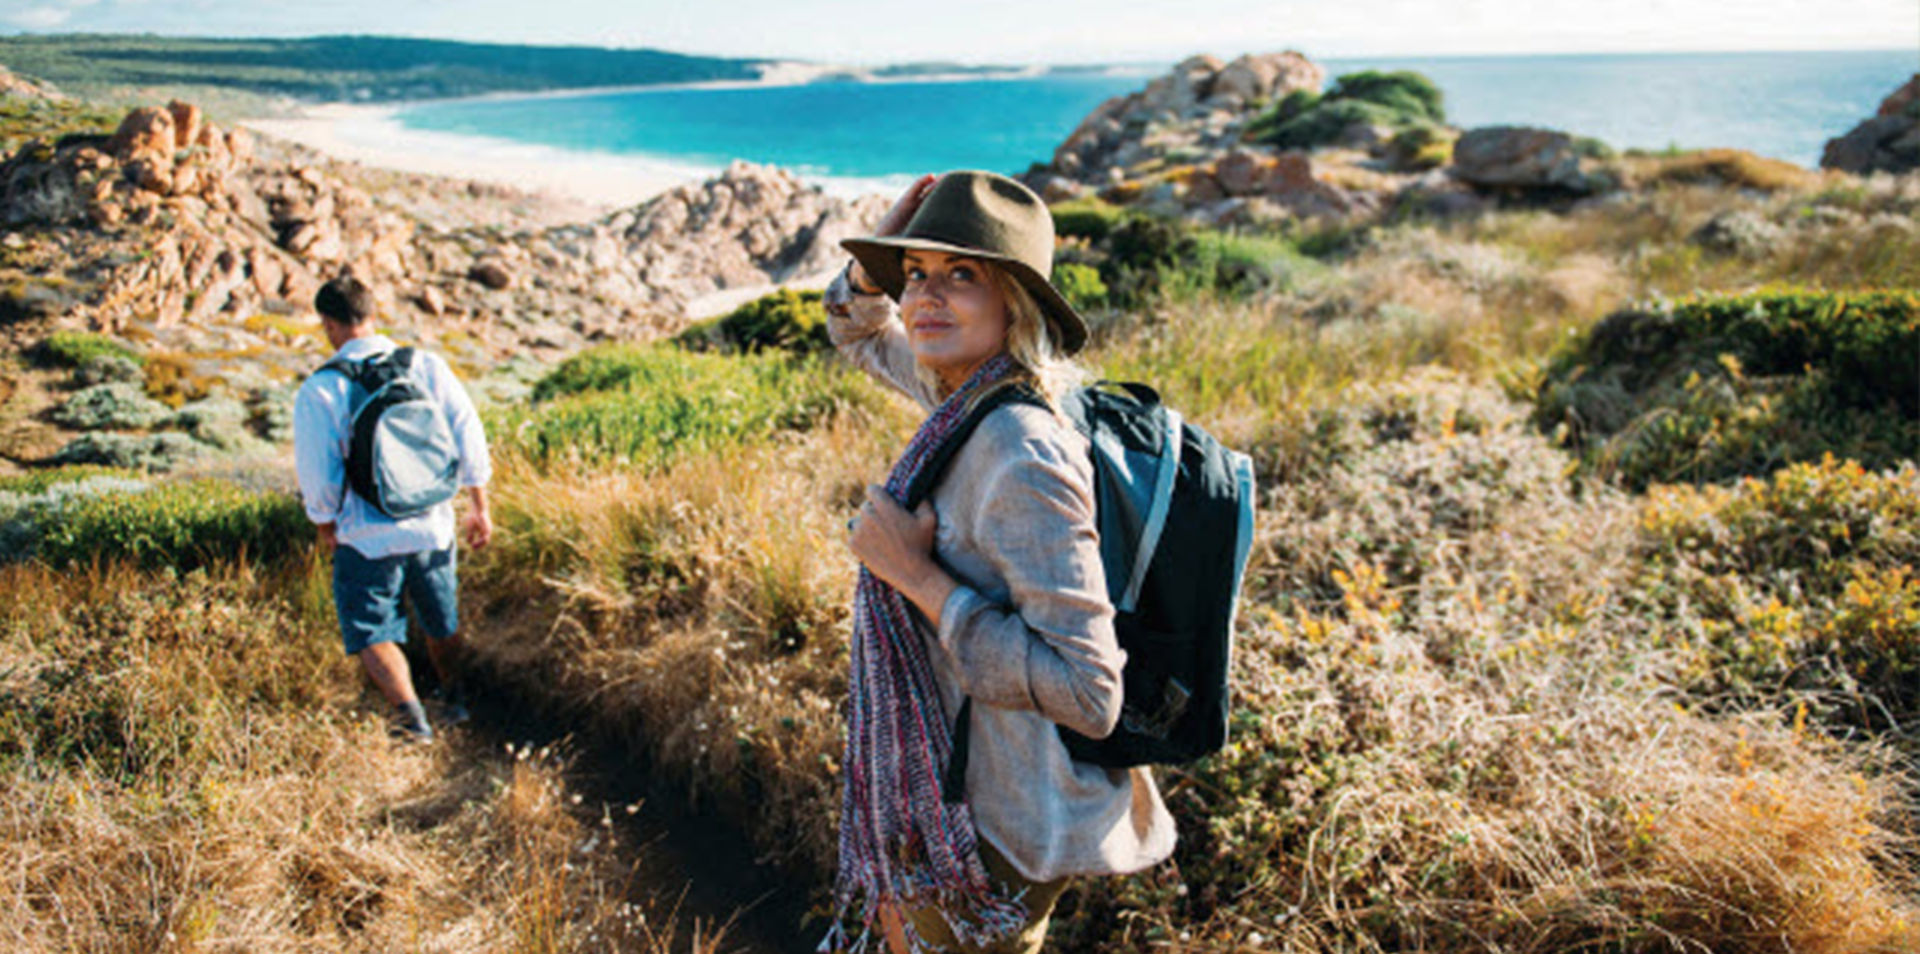 Margaret River's Cape to Cape